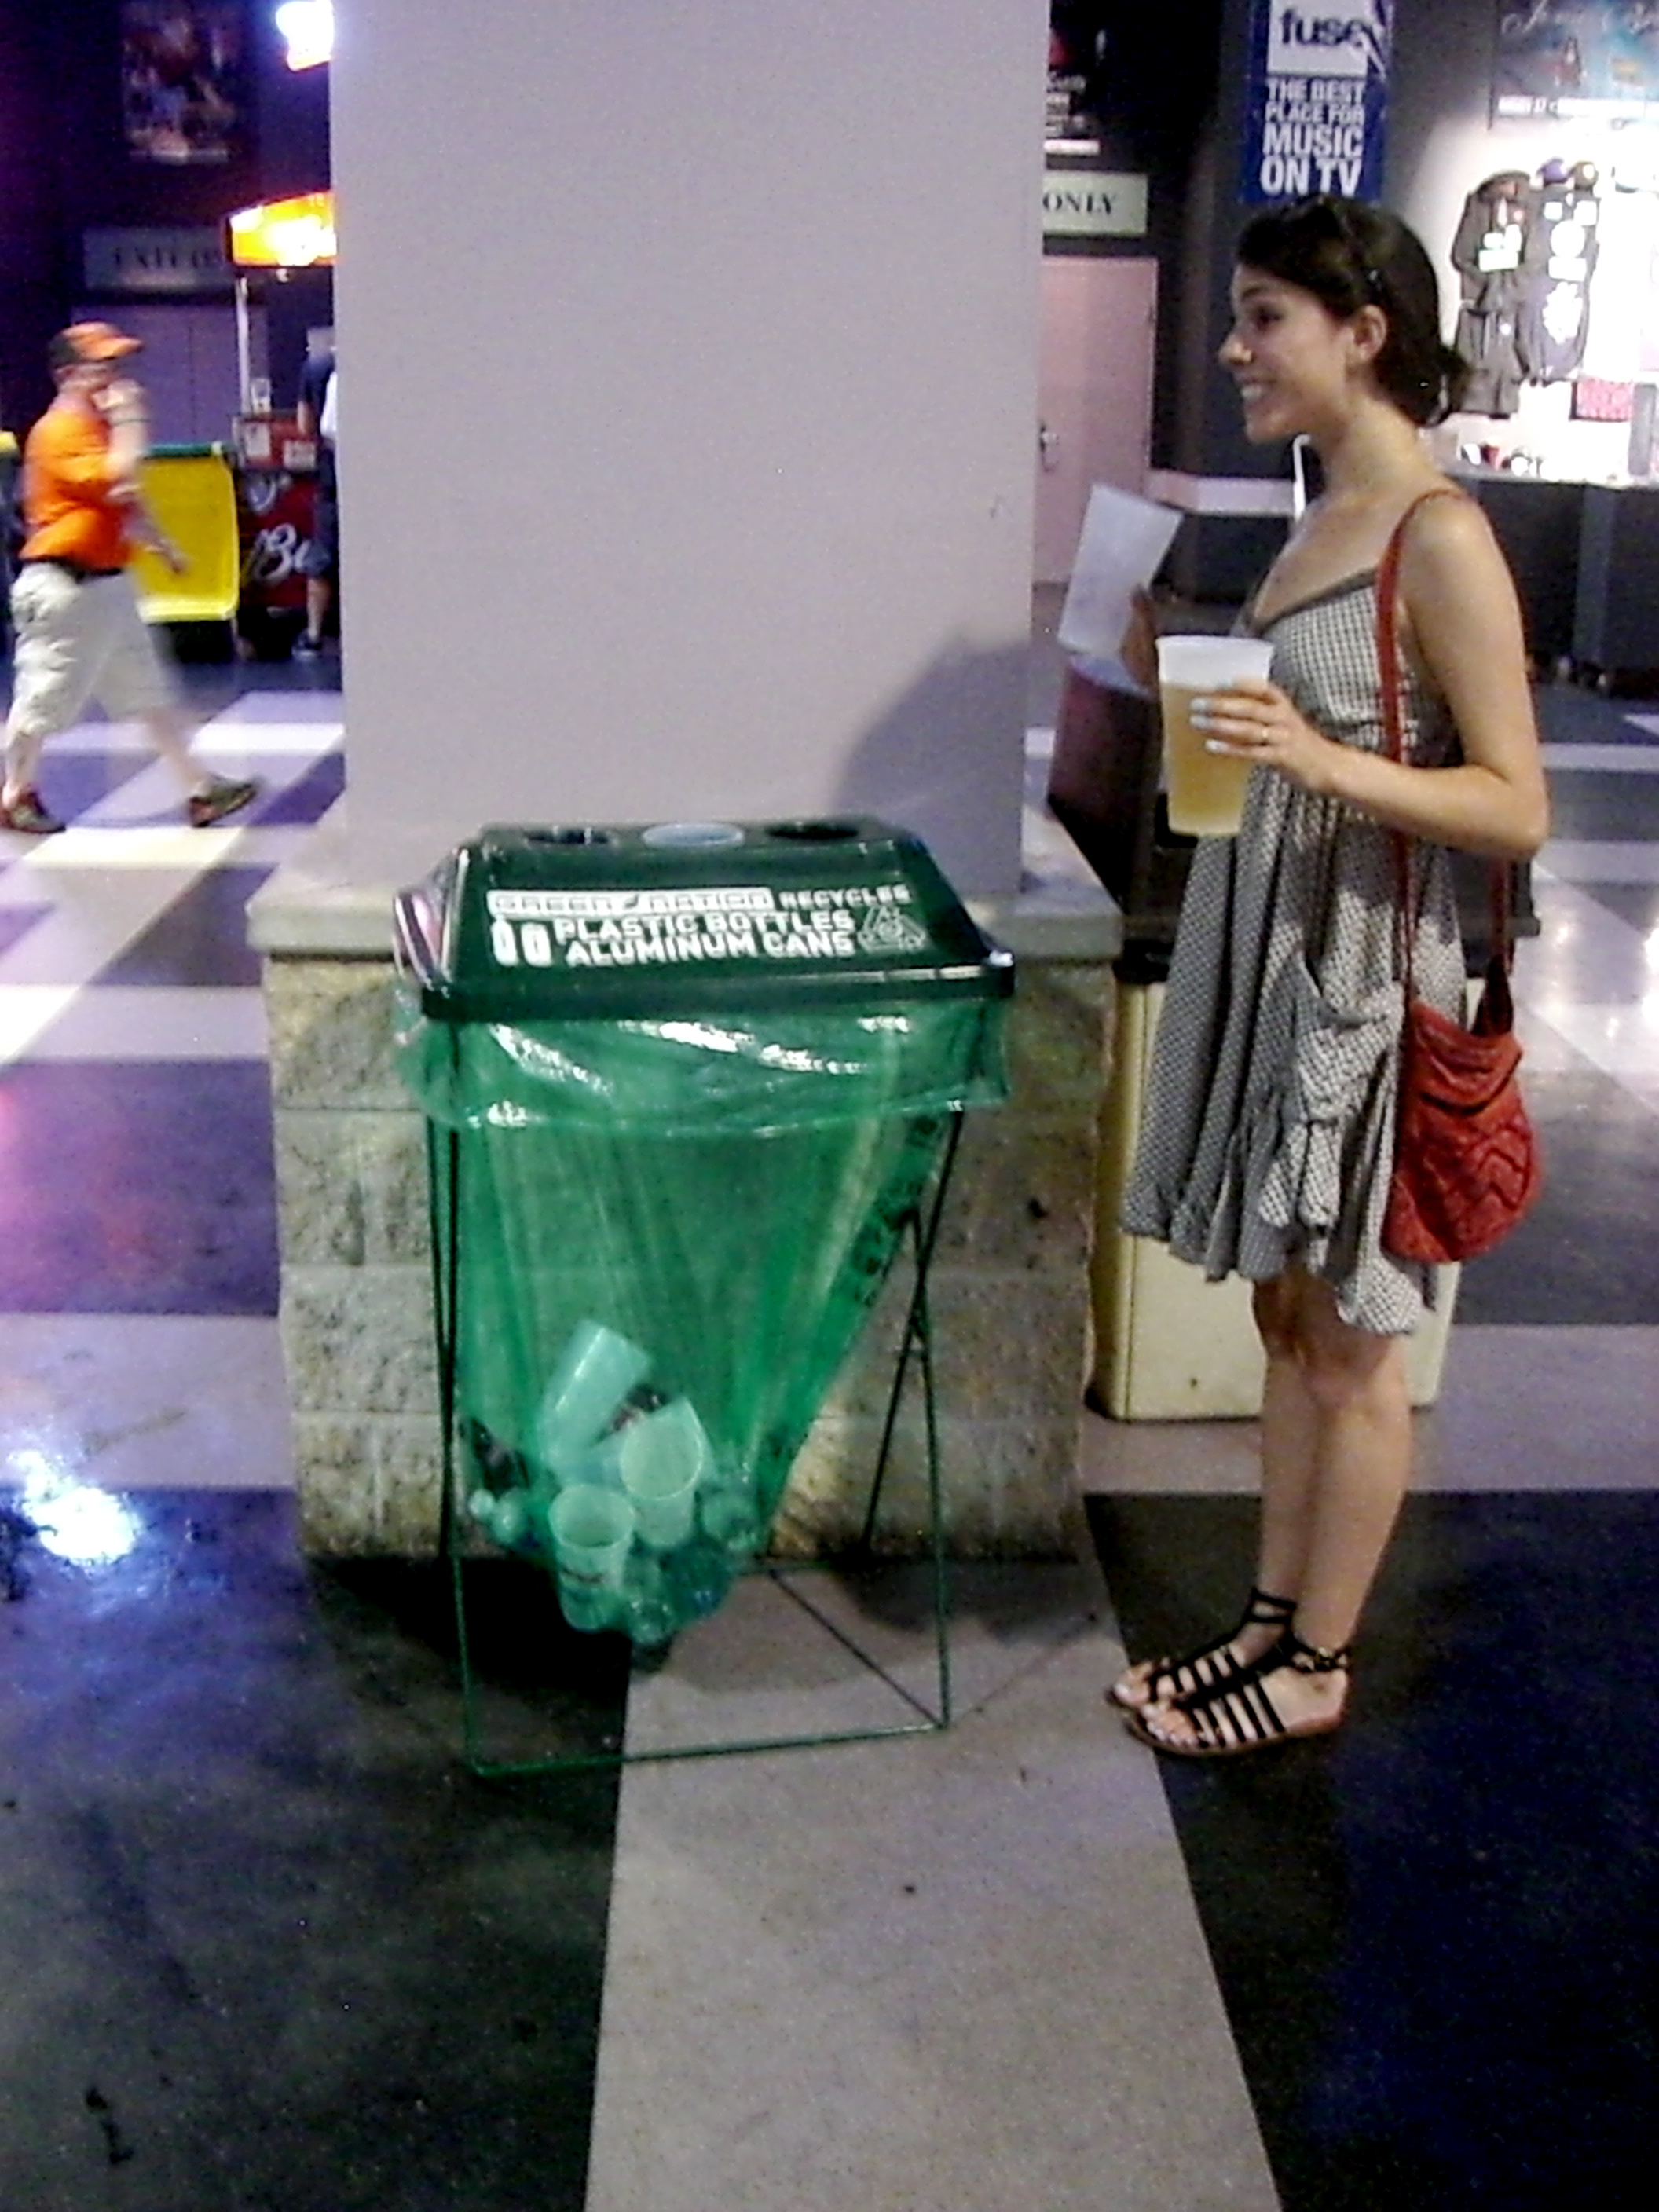 I loved that there was recycling throughout the concert venue.